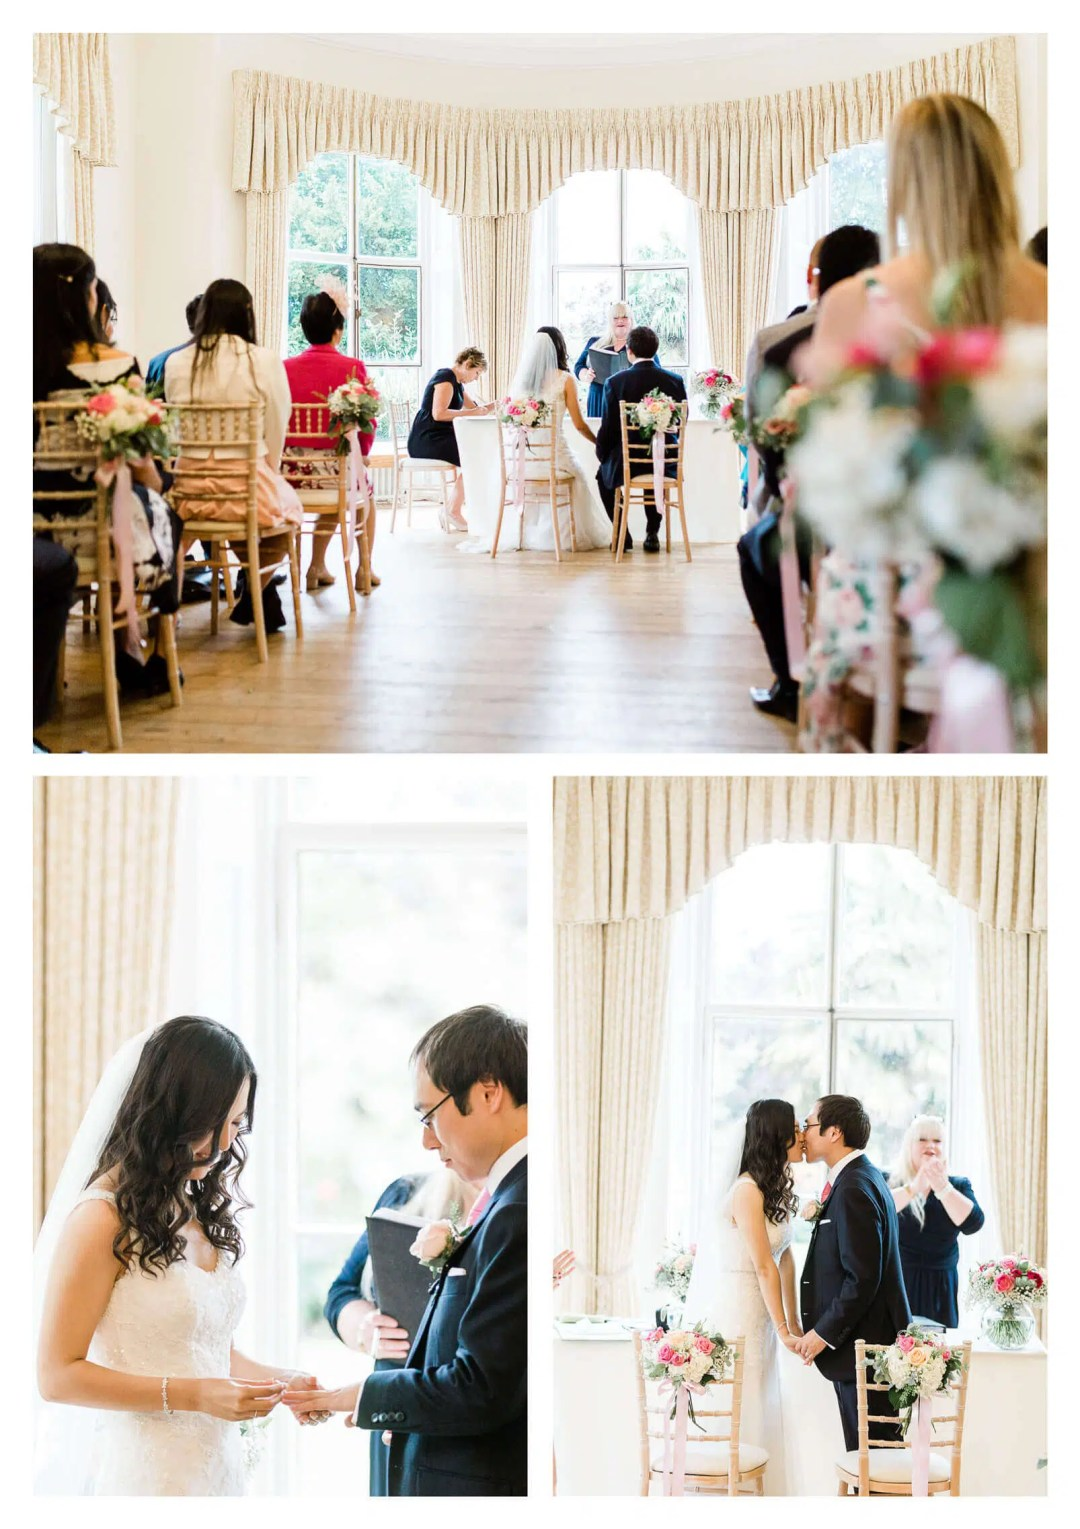 Cambridge Cottage wedding ceremony | Kew Gardens wedding photographer